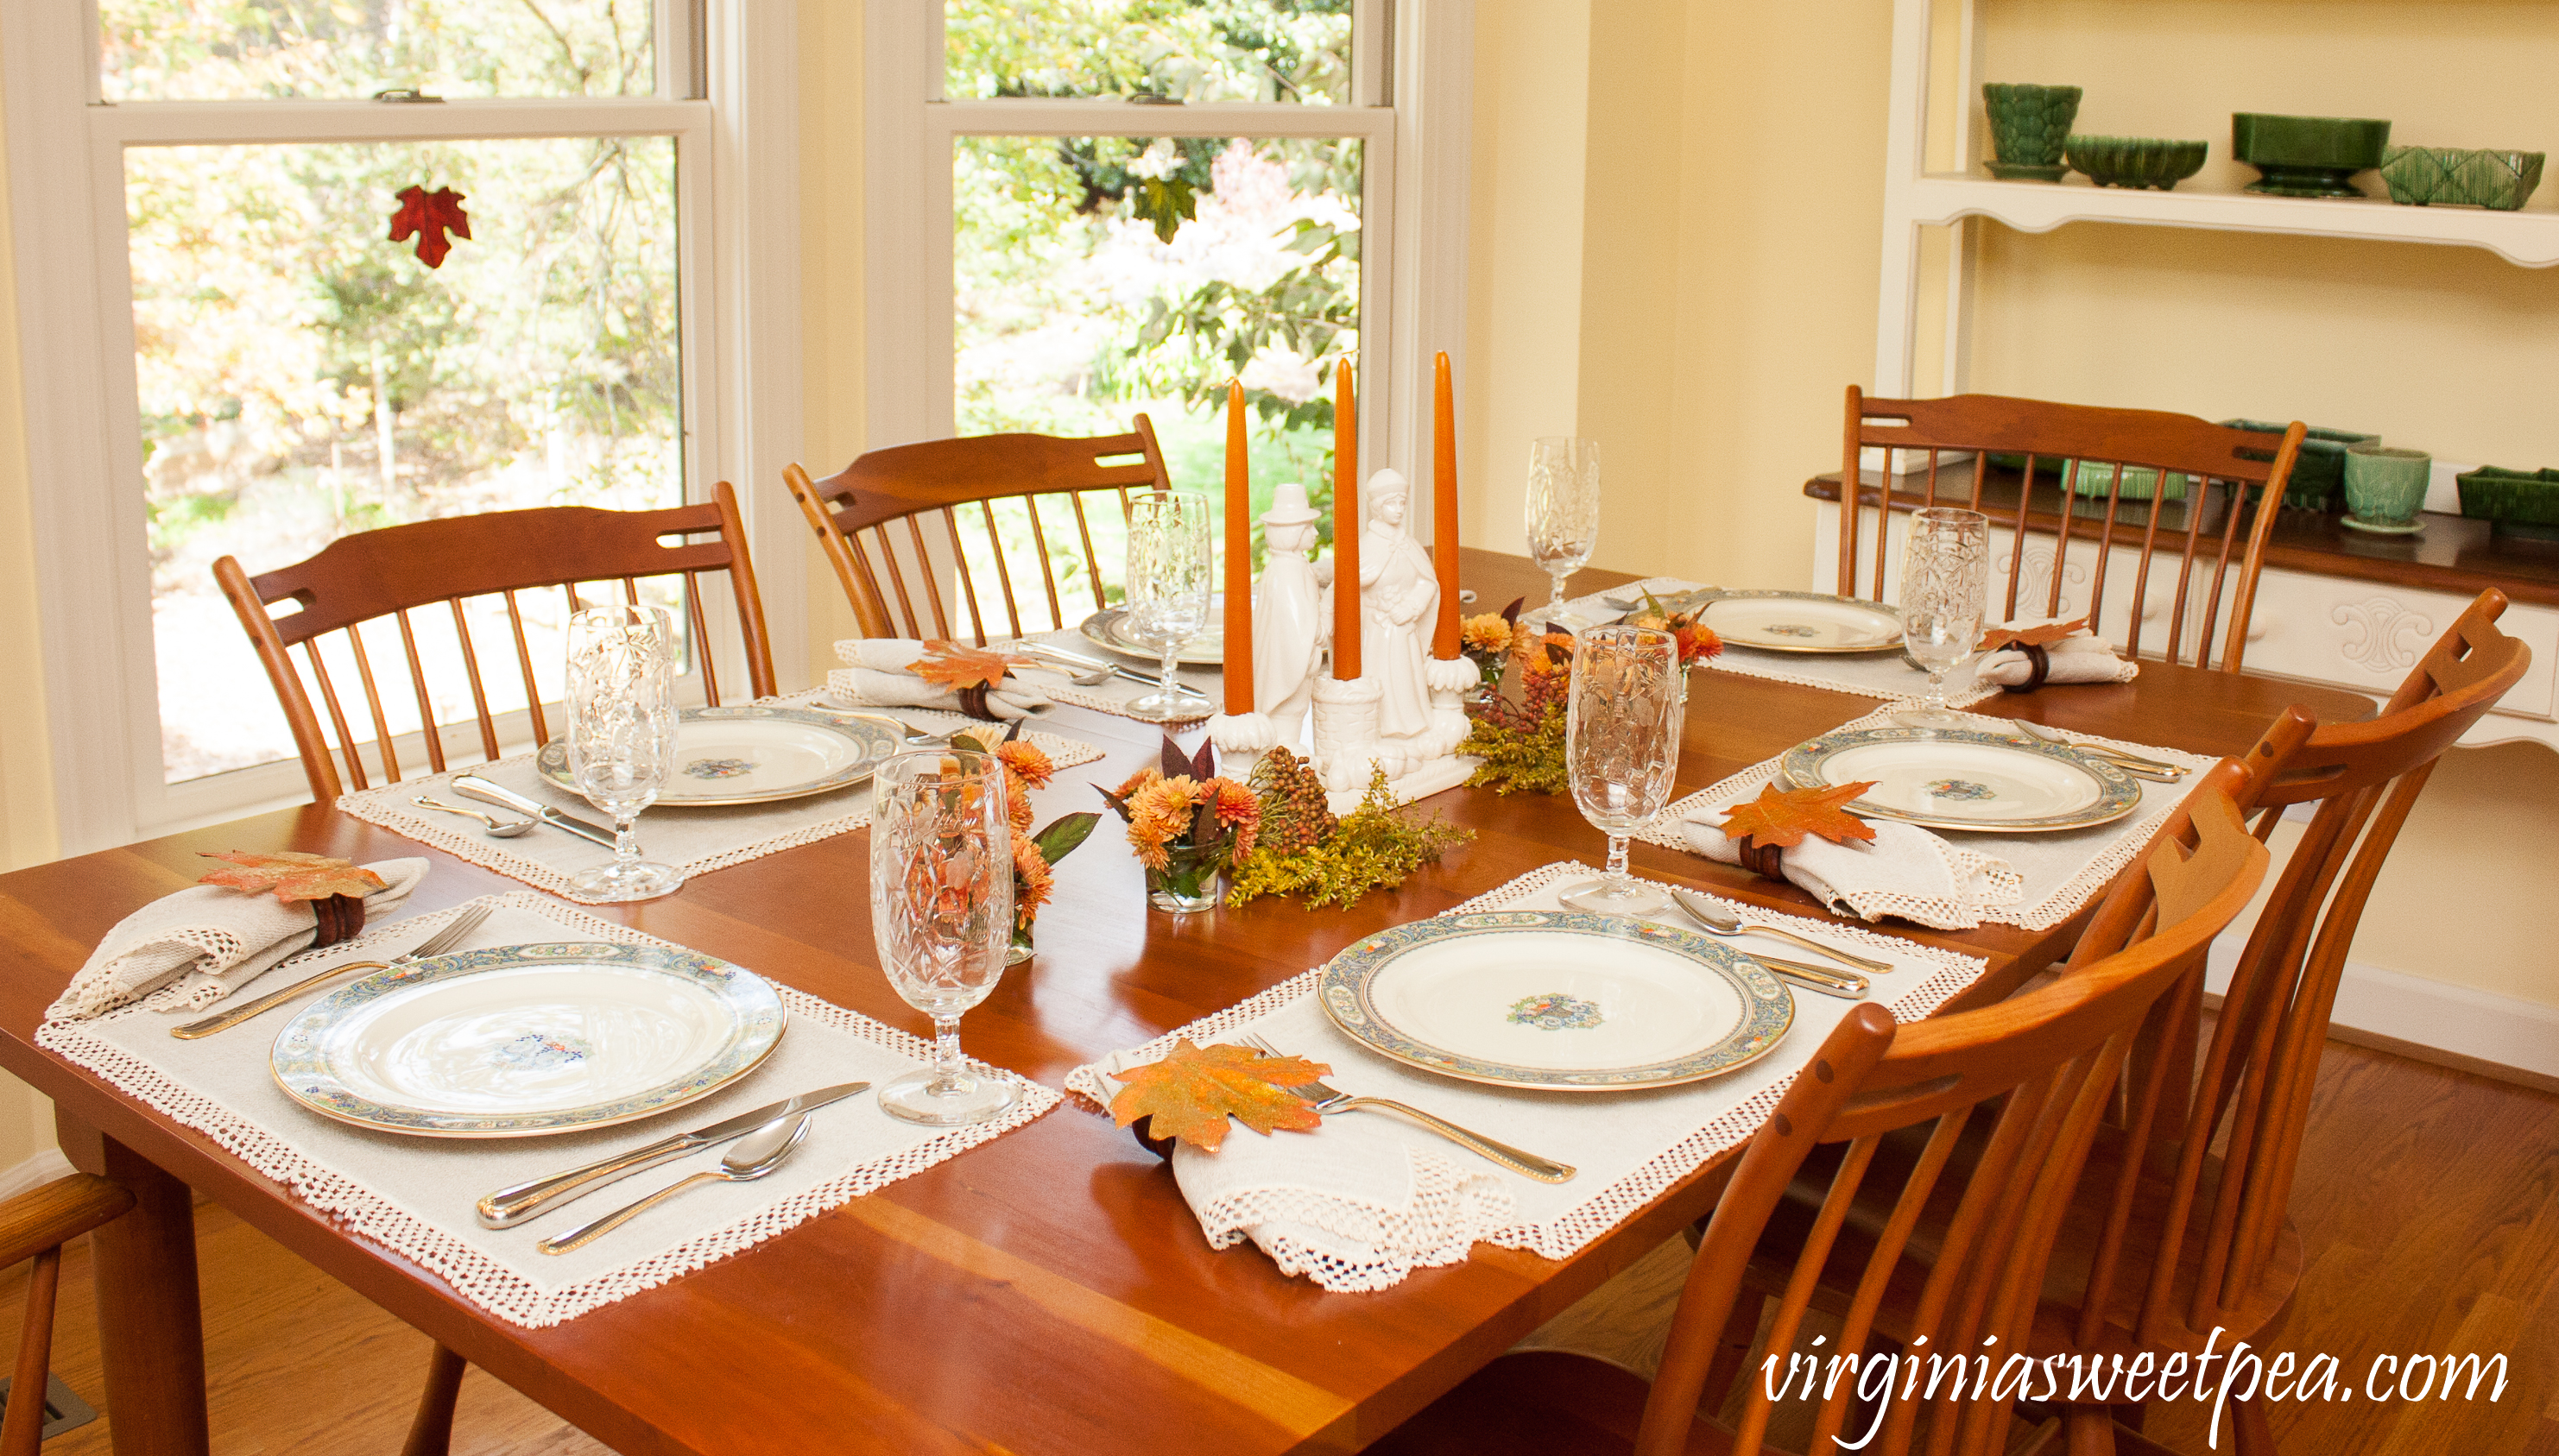 We Gather Together Thanksgiving Table - Get ideas for setting your table for Thanksgiving from 20+ bloggers. #thanksgivingdecor #thanksgiving #vintagepilgrims #thanksgivingtablescape